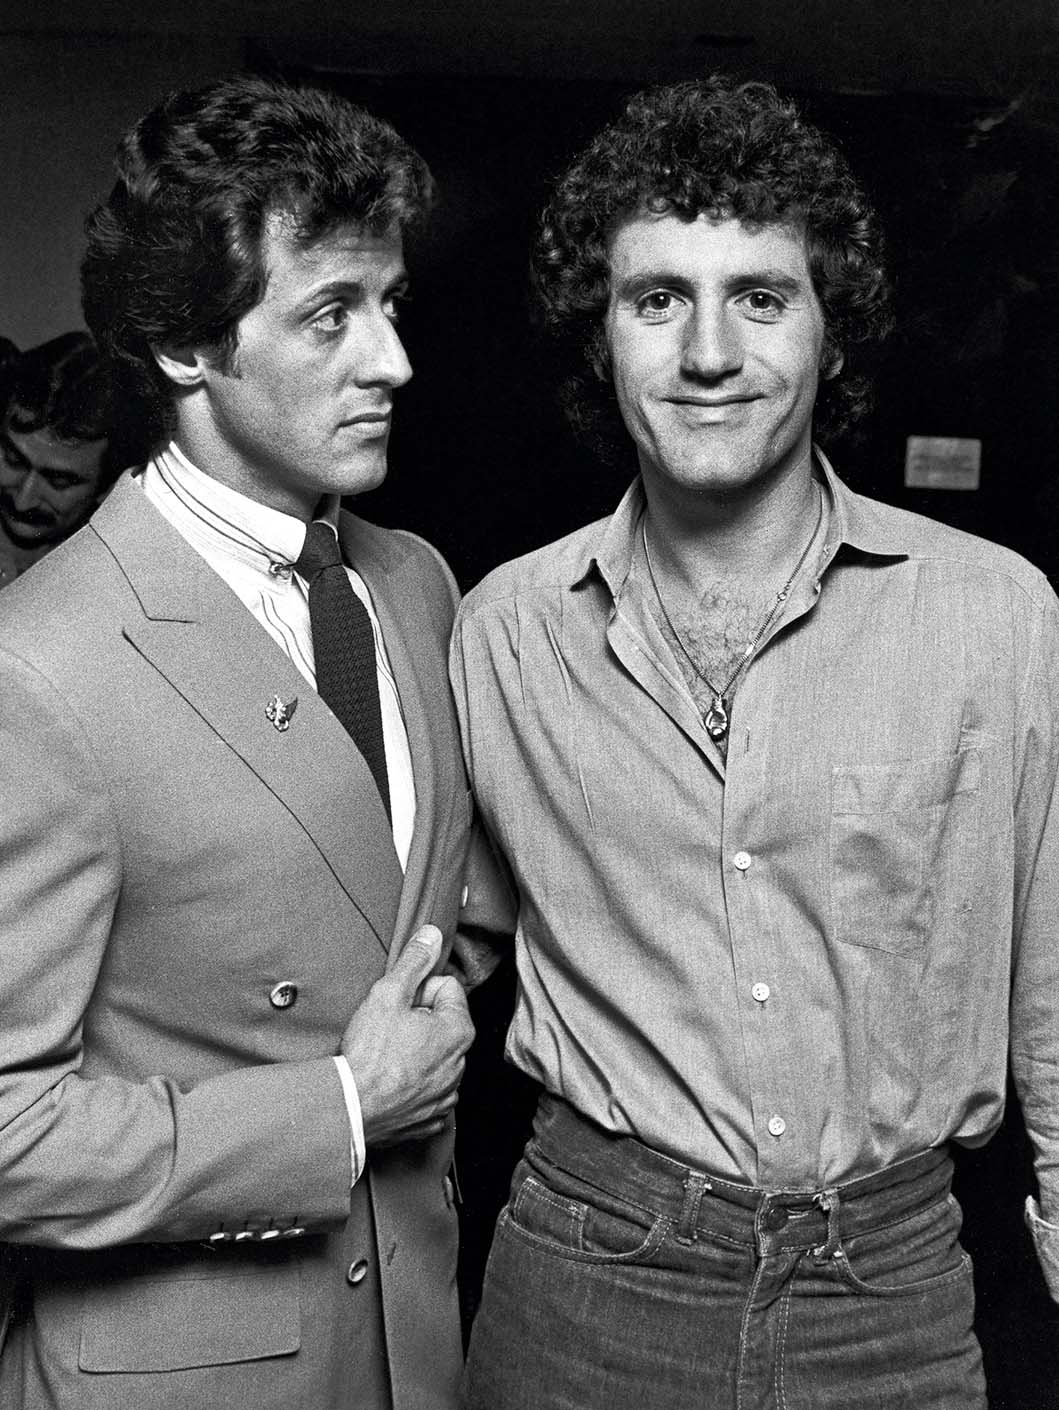 Sylvester Stallone and Frank Stallone during Sylvester Stallone's 36th Birthday at The Tropicana in Atlantic City, New Jersey, United States. (Photo by Ron Galella/Ron Galella Collection via Getty Images)